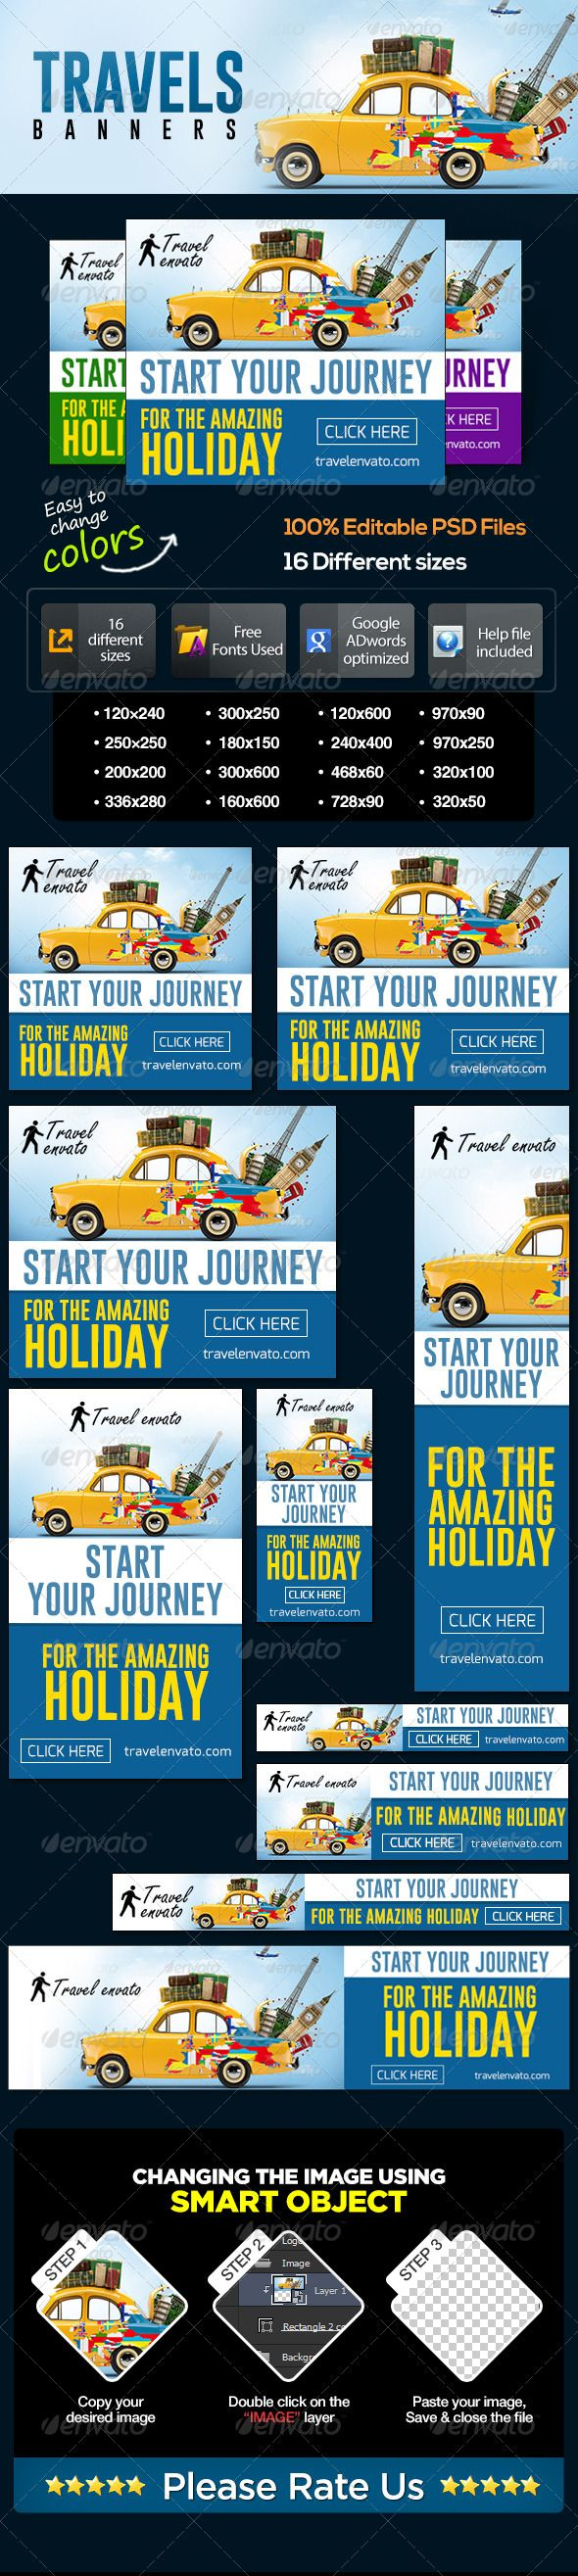 Travel Web Banner Set Template PSD   Buy and Download: http://graphicriver.net/item/travel-banner-set/7076546?WT.ac=category_thumb&WT.z_author=BannerDesignCo&ref=ksioks